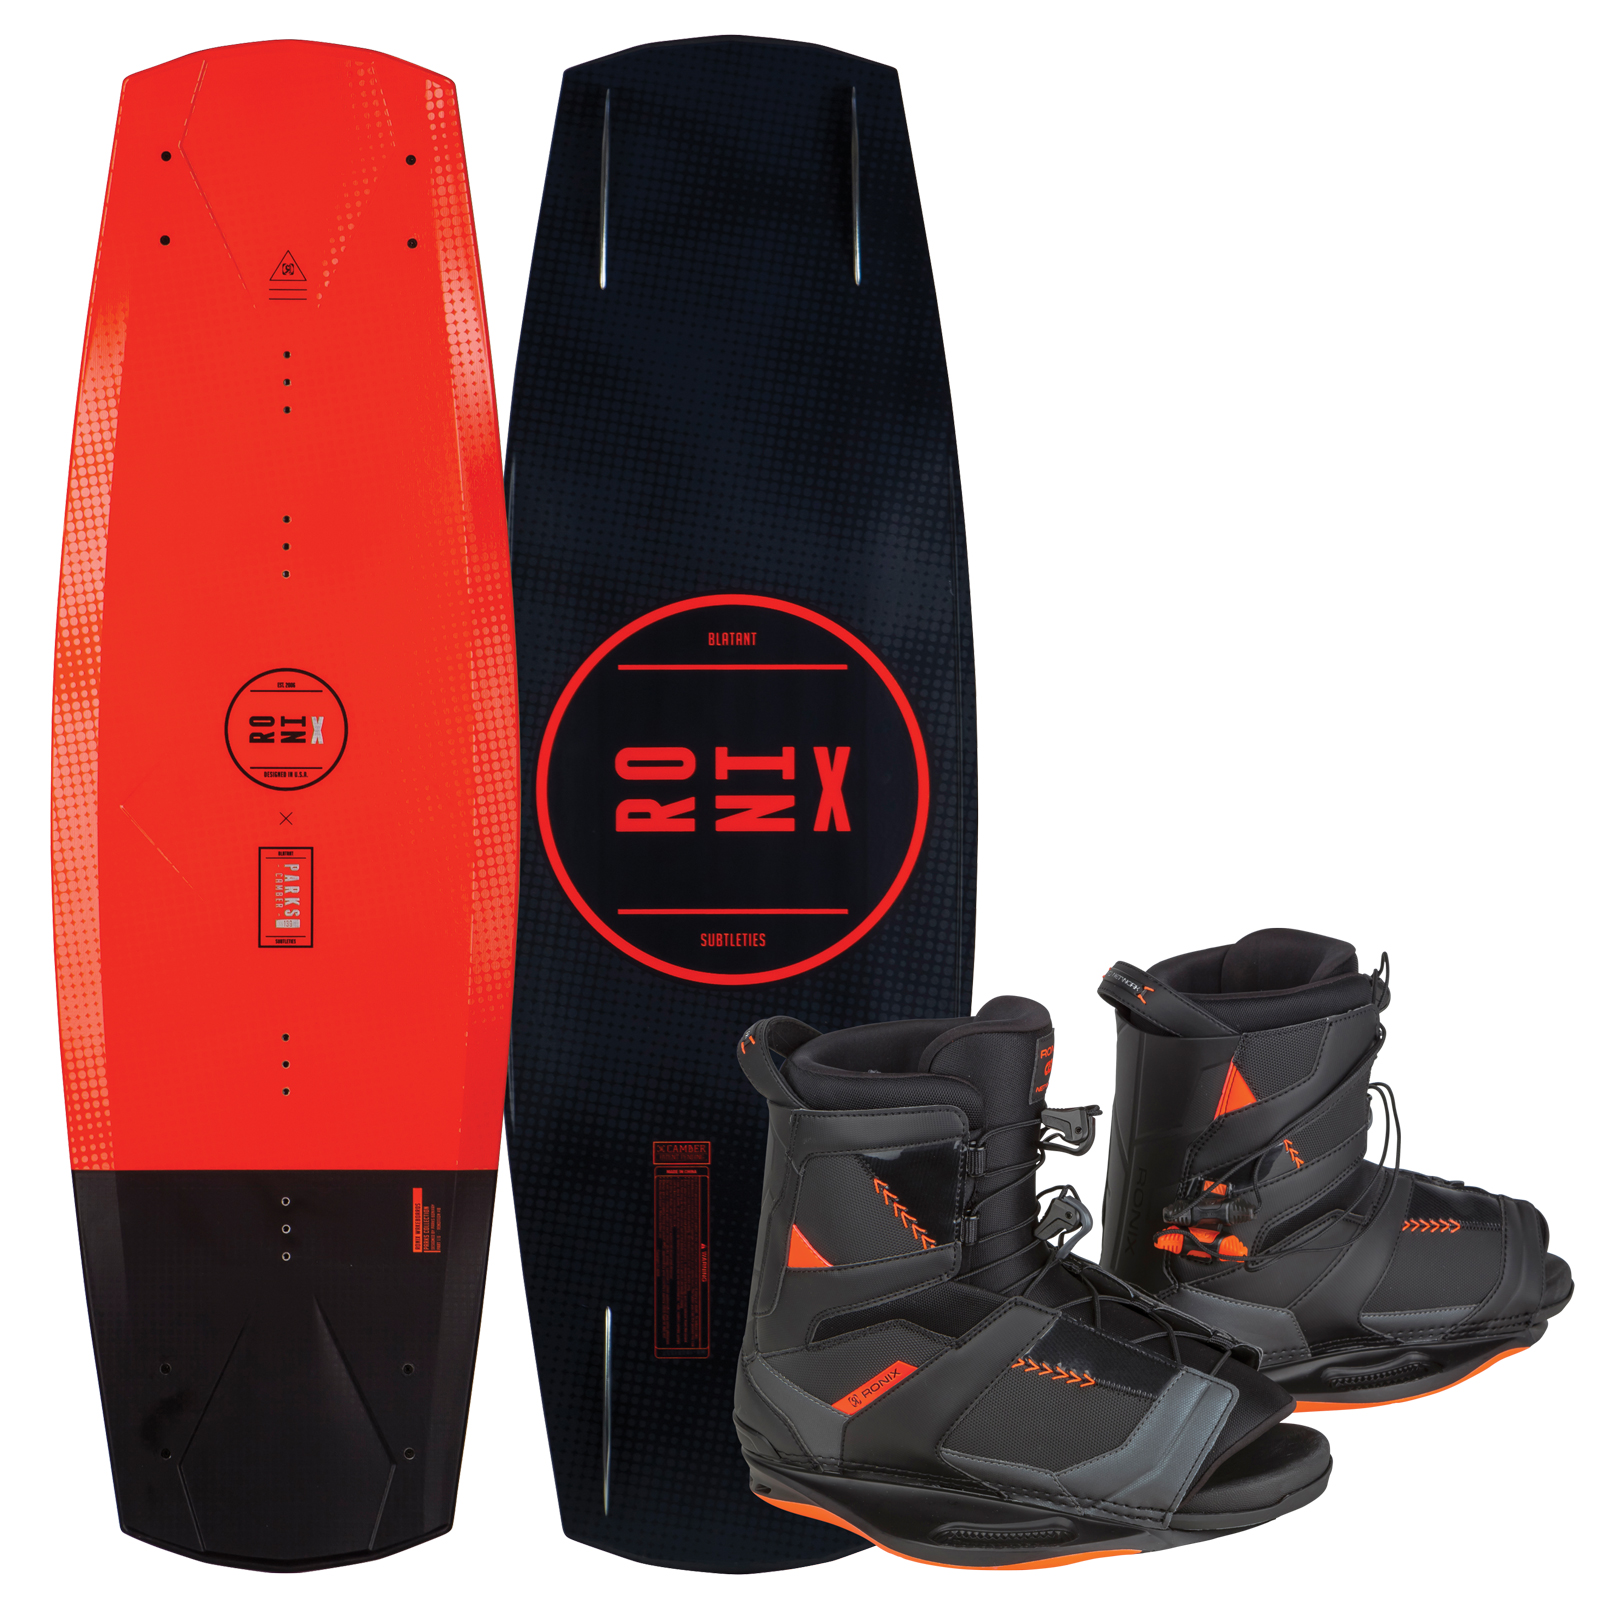 PARKS MODELLO 144 W/ NETWORK PACKAGE RONIX 2017